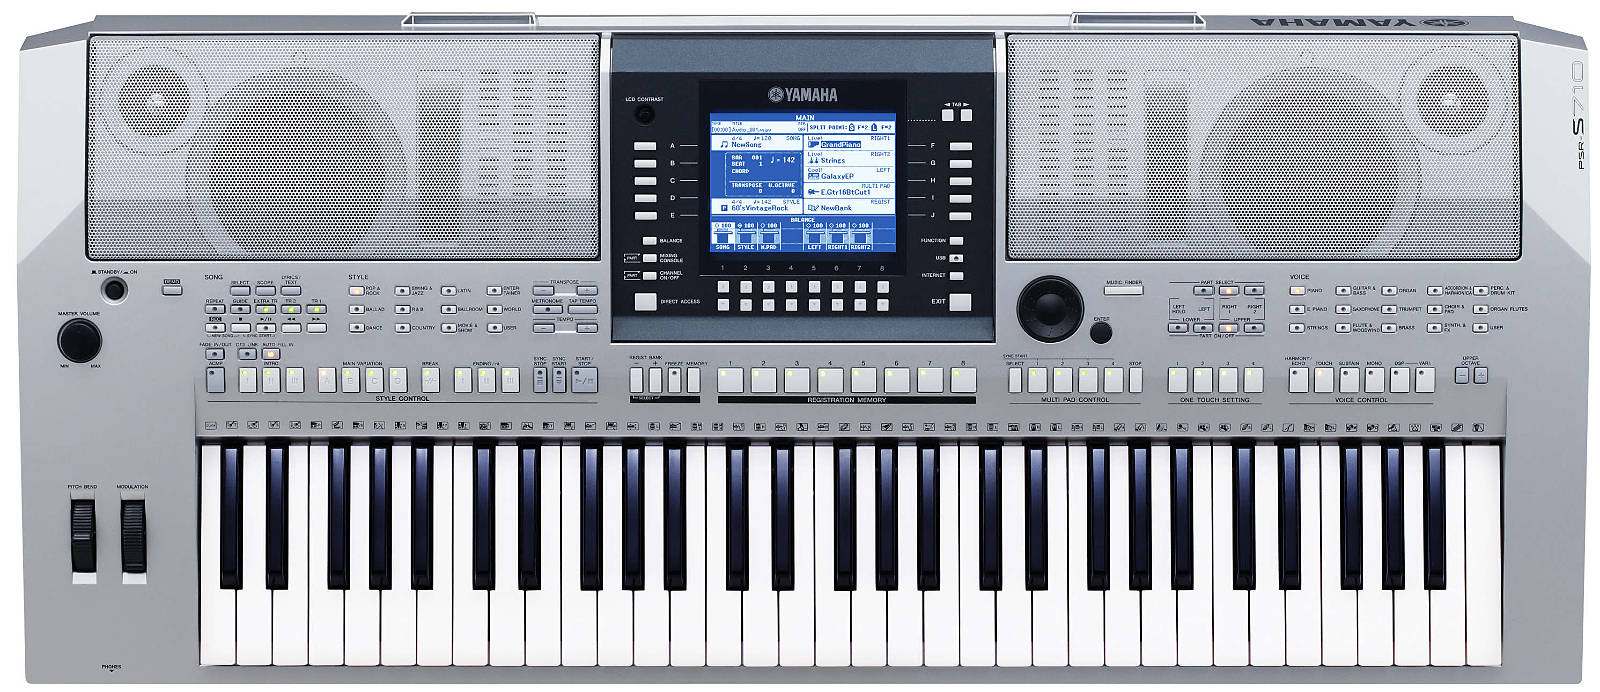 Yamaha Psr S550 Style Files Download - berlincrise